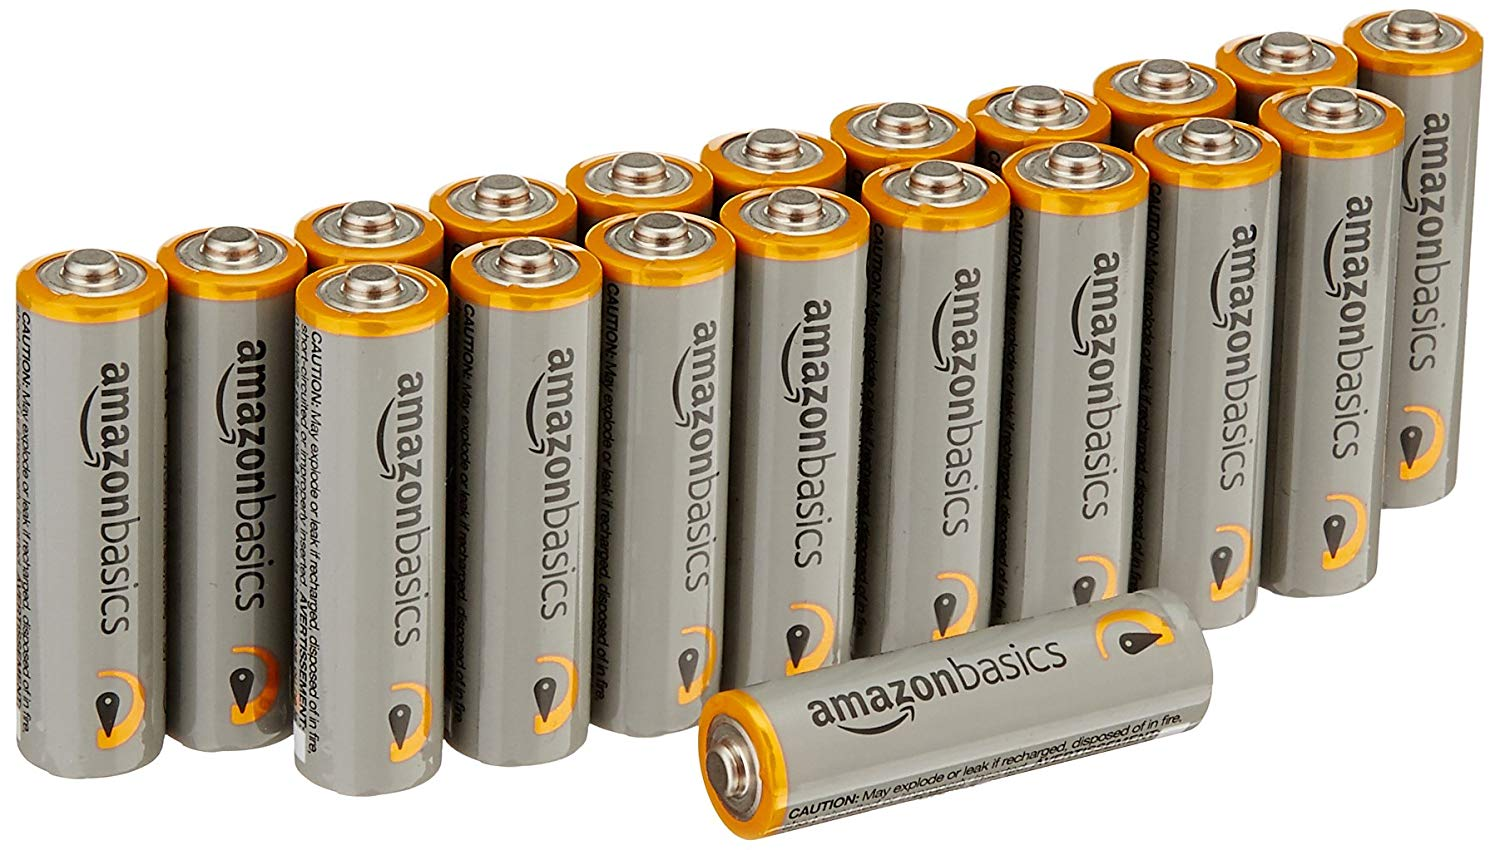 AA Batteries $8